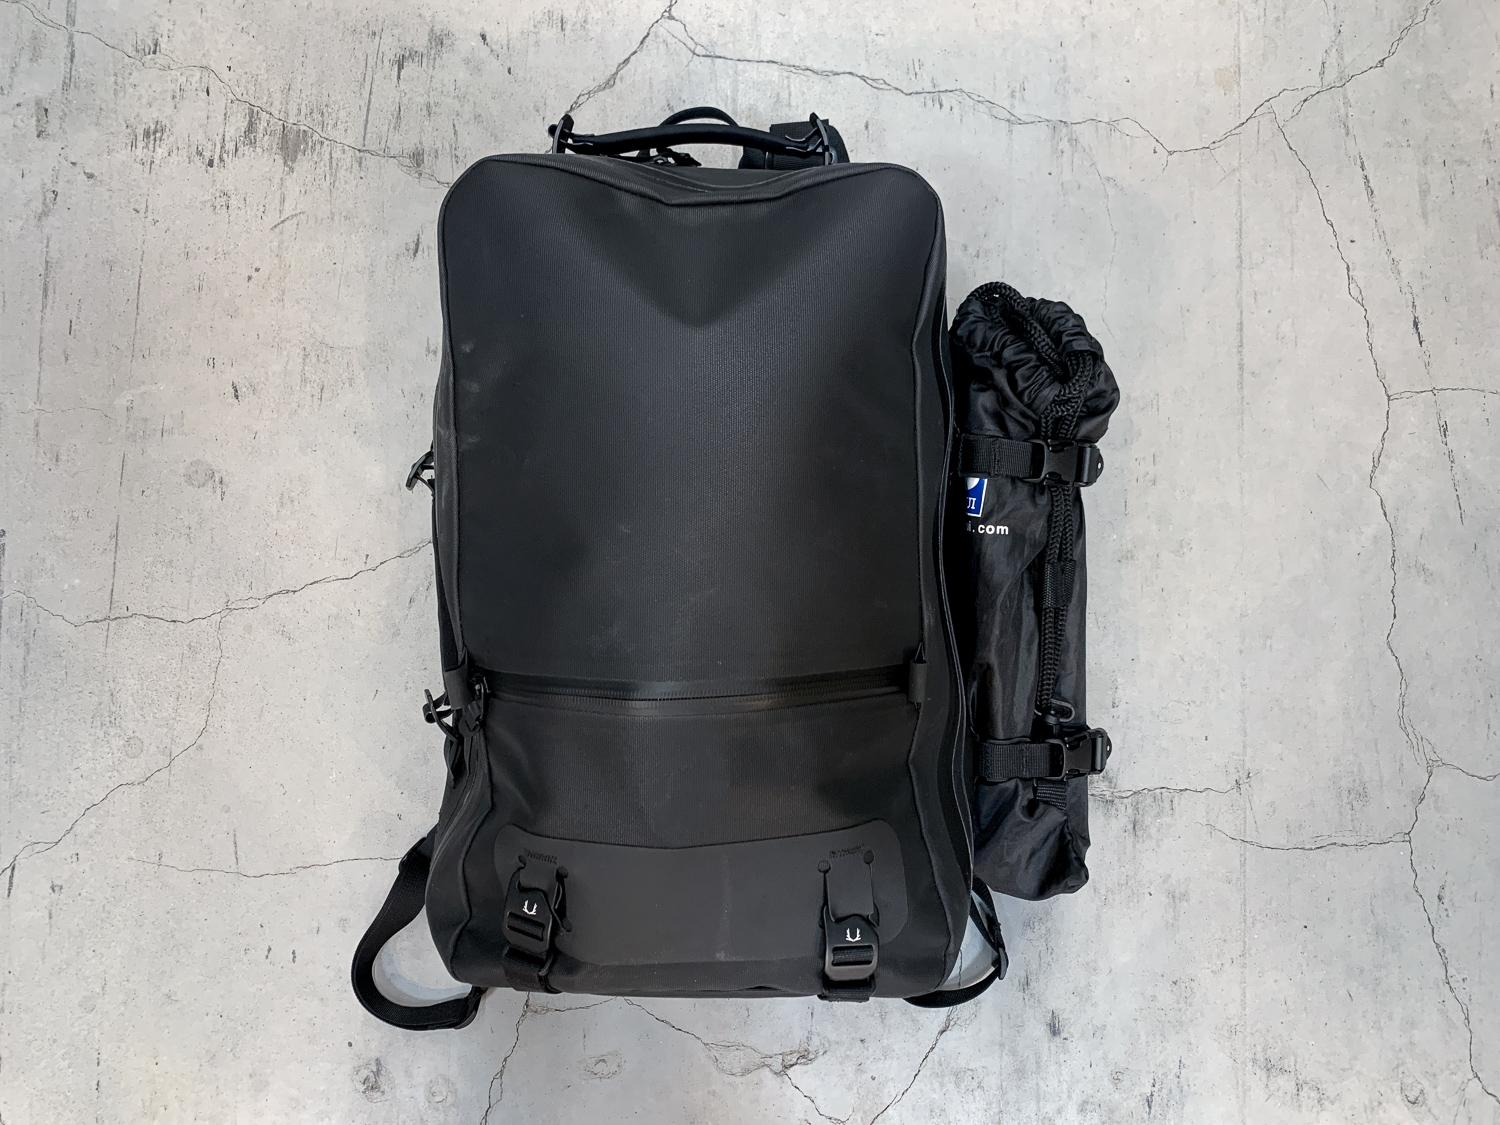 This black minimalist backpack will give unforgettable first impressions.